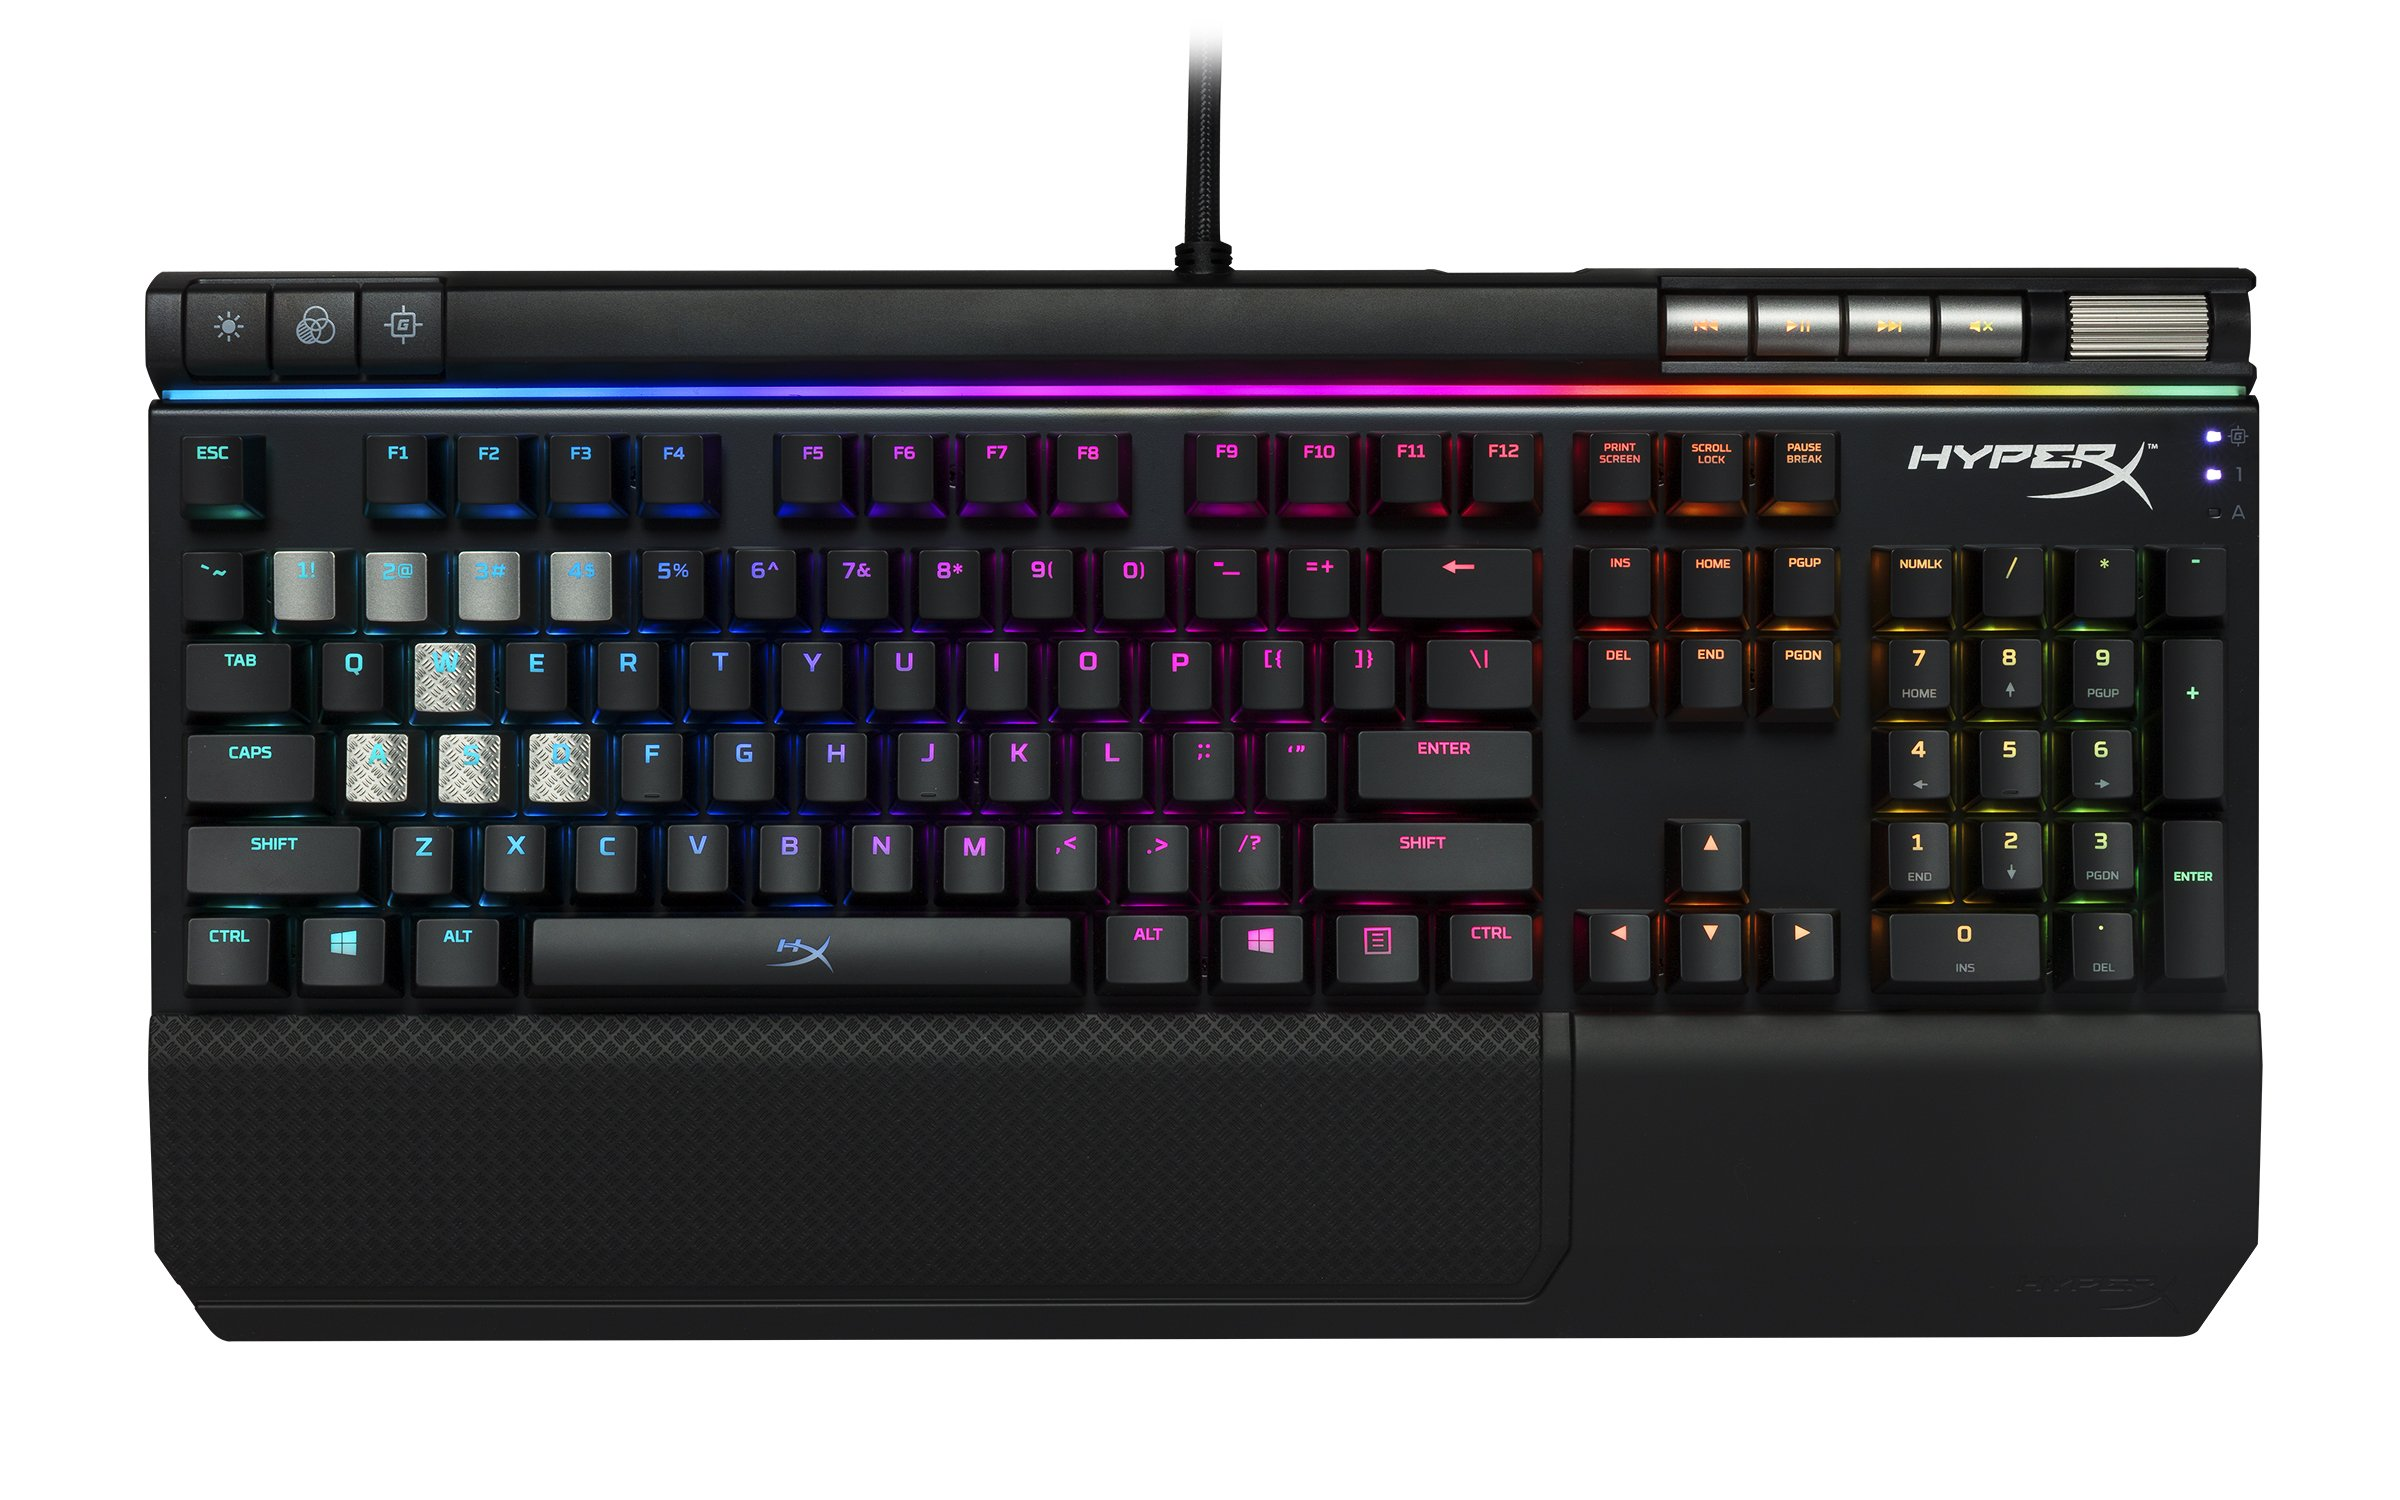 Teclado Mecanico : HyperX Alloy Elite MX Red